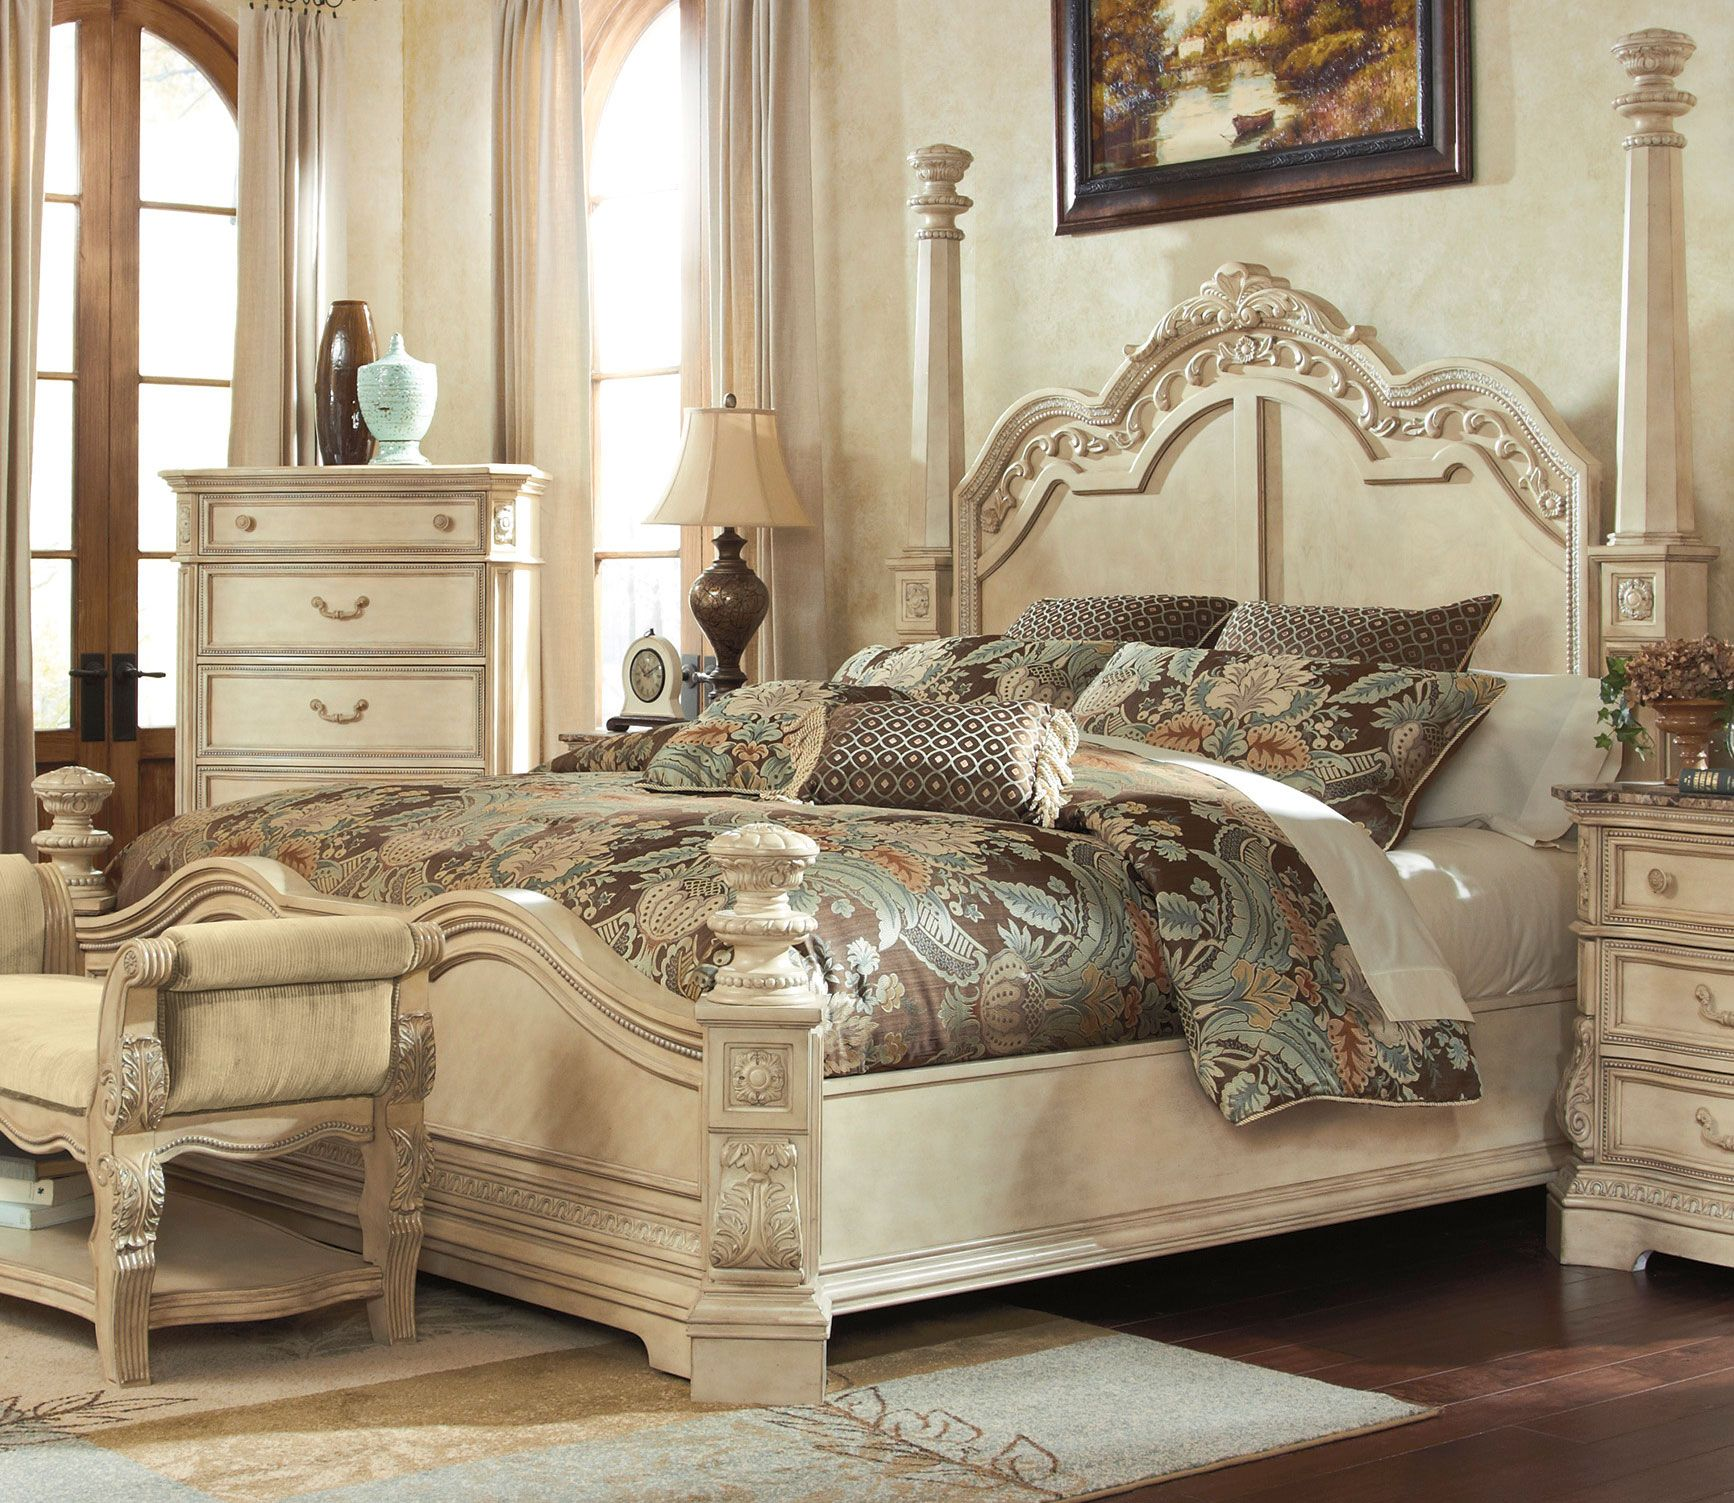 Pin By Ashley Towner On Bedroom Ideas: Pin By Habouba On Furniture: Bedroom Furniture